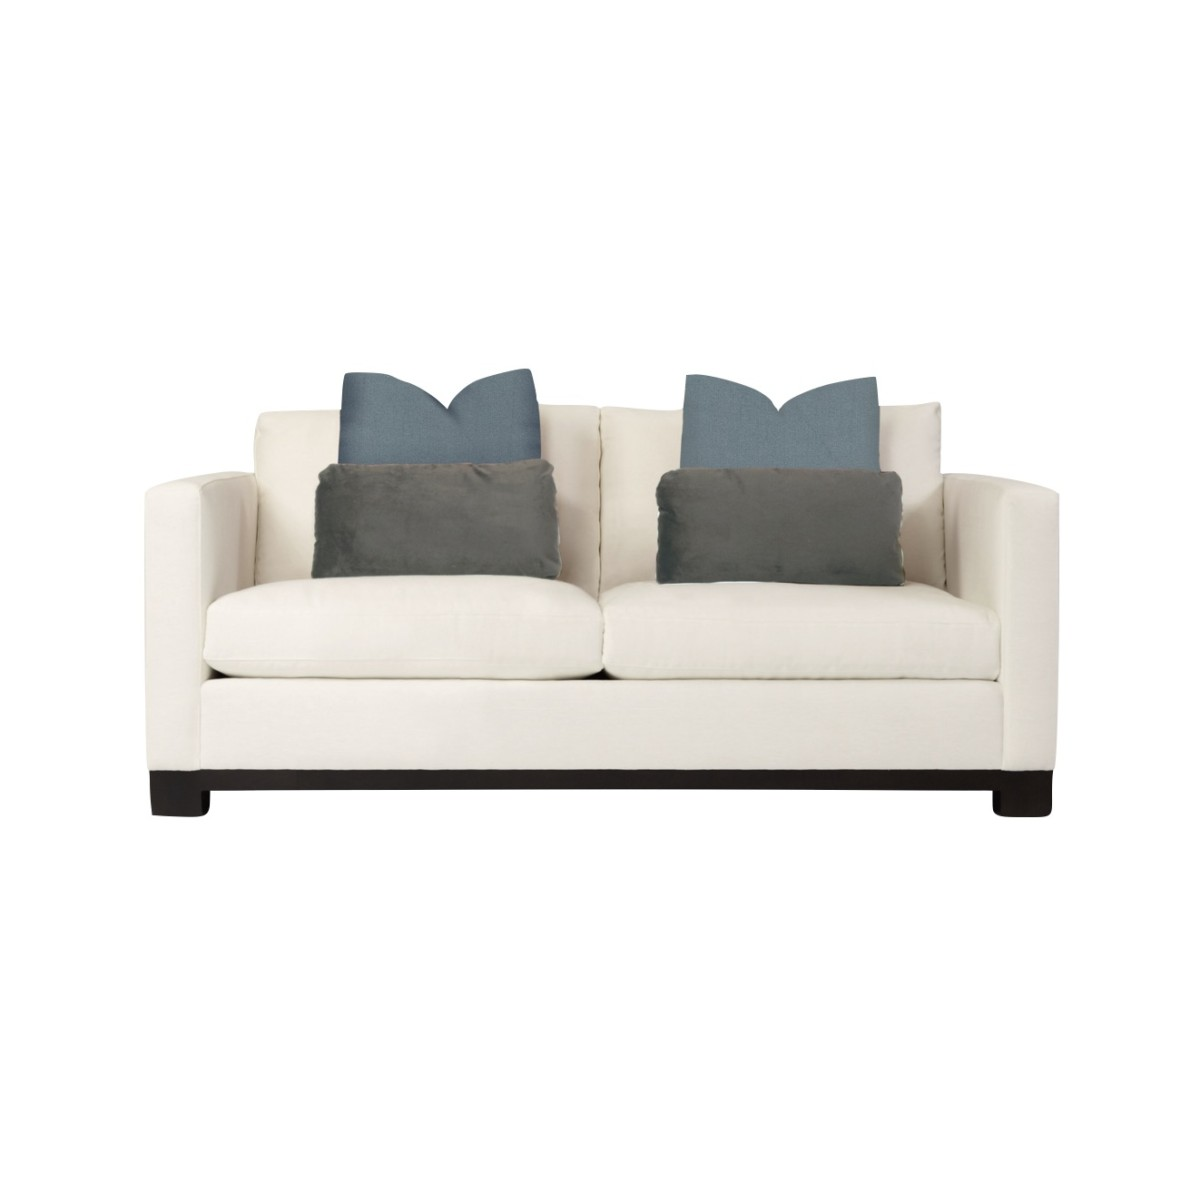 Macys Furniture Outlet Columbus: Swan Interiors And Furniture Store